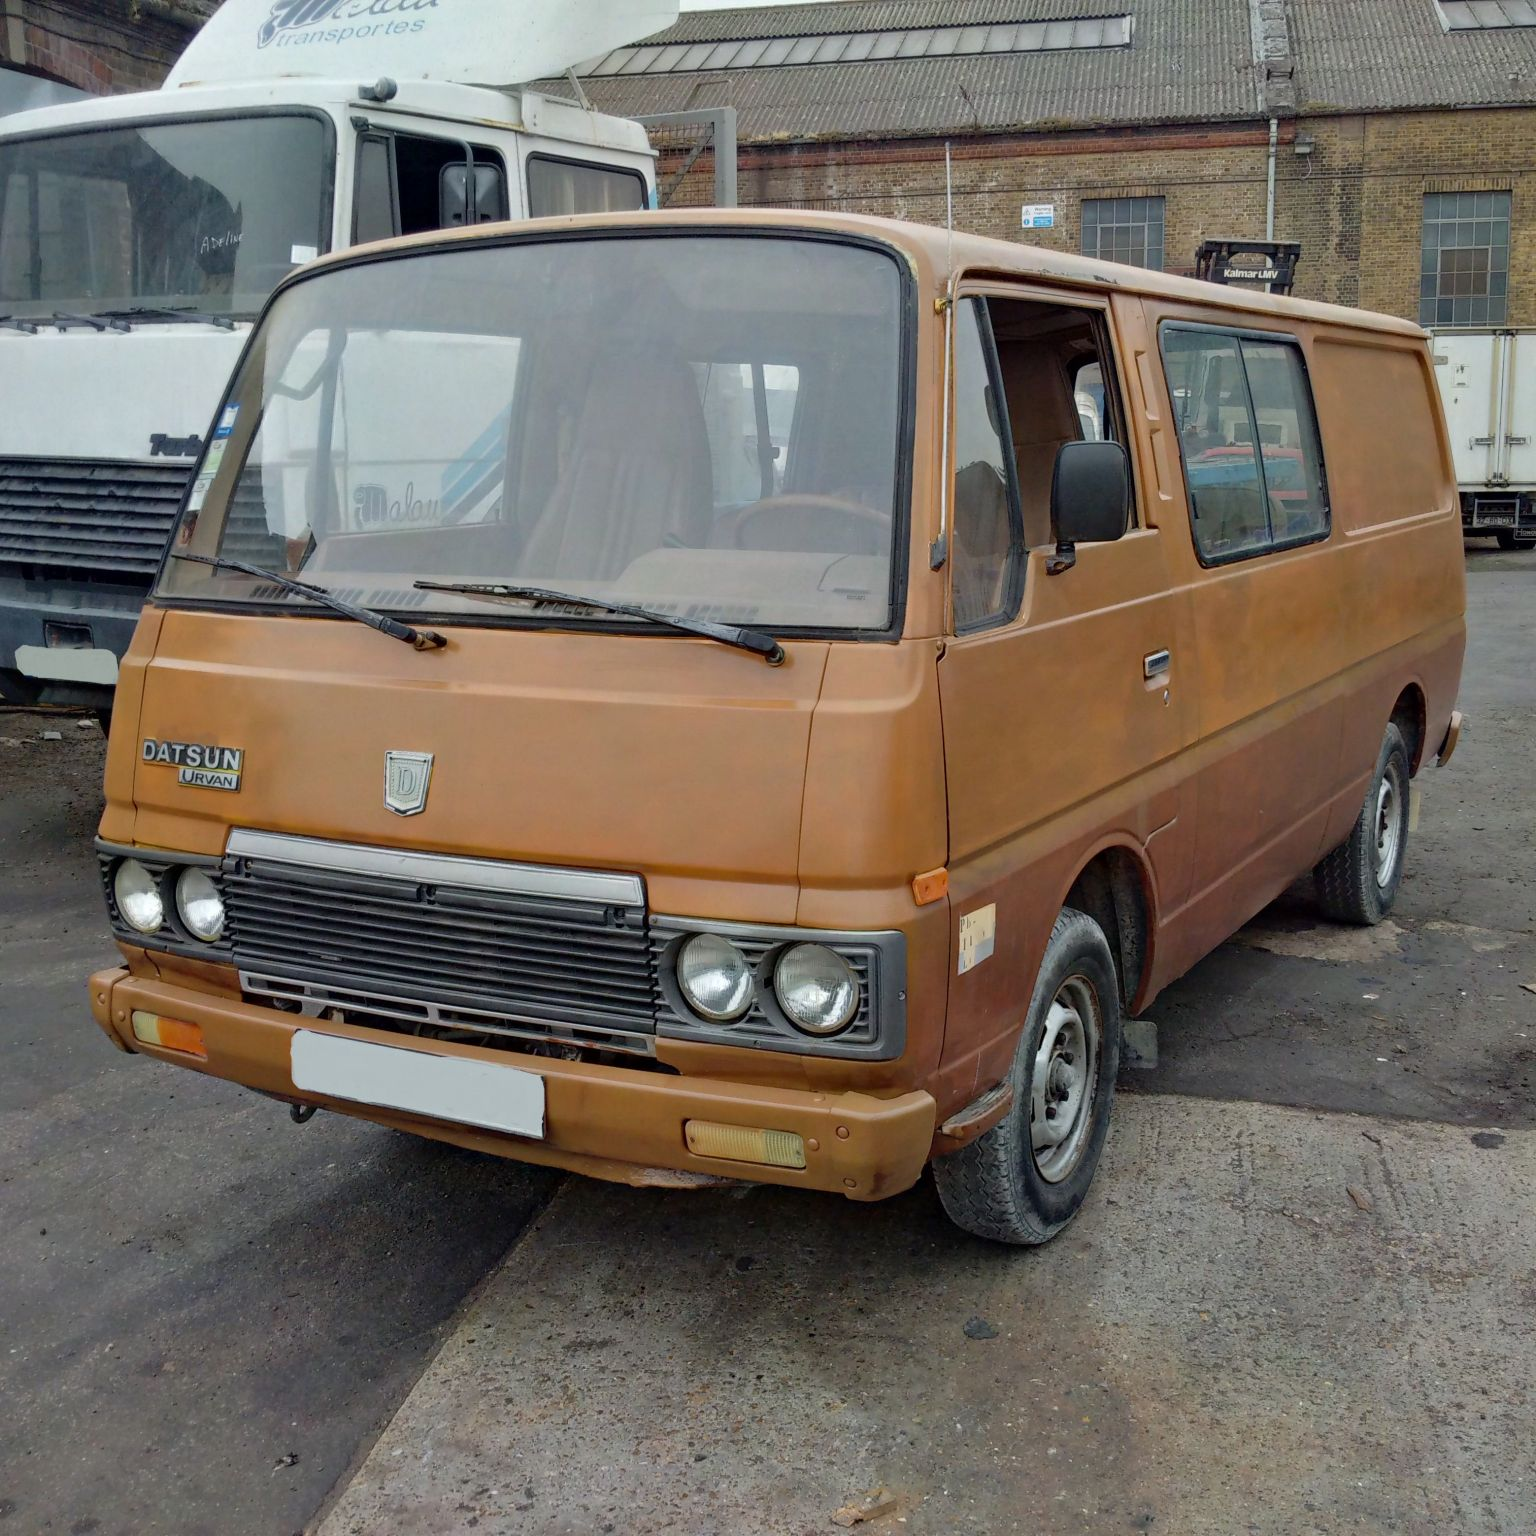 Left hand drive Nissan Urvan E23 long wheel base mini bus.